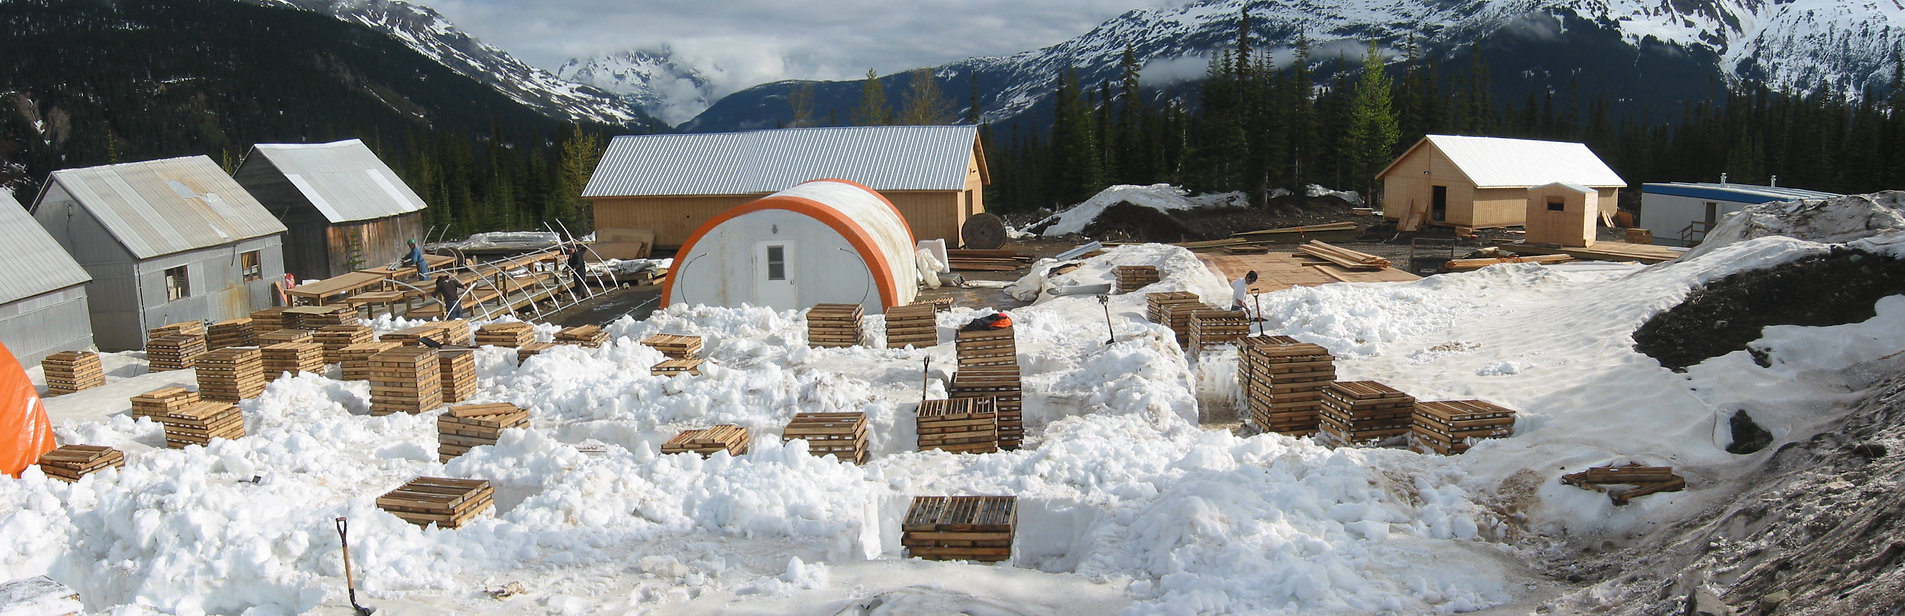 Stacks of drill core in springtime emerging from snow in a mountain mineral exploration camp.